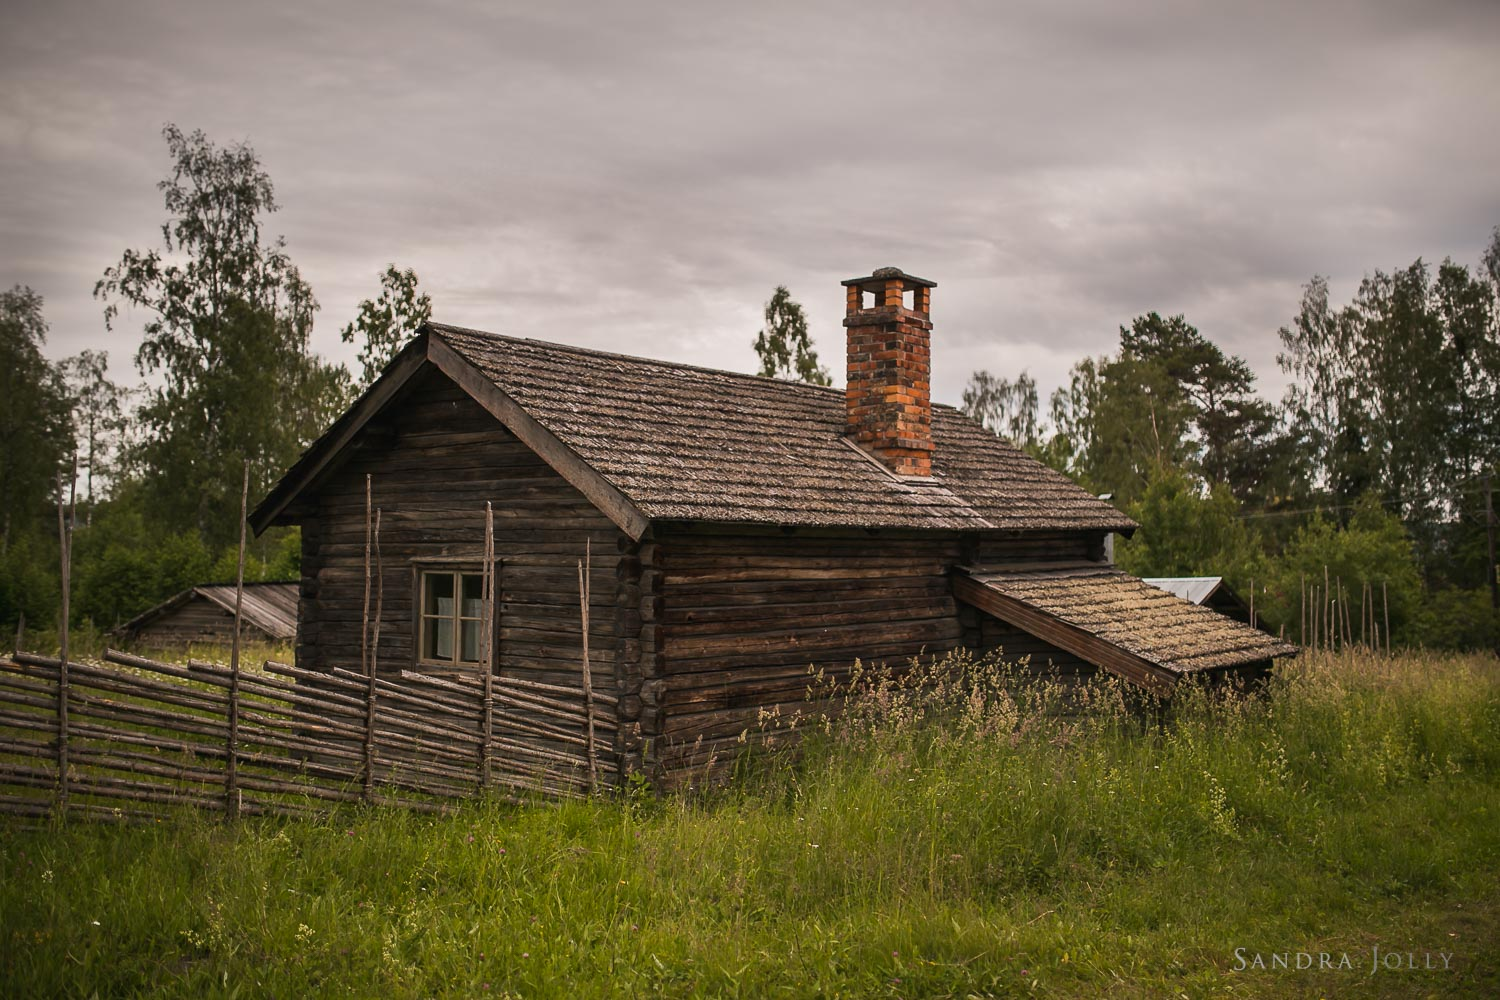 dalarna-wooden-cabin-by-sandra-jolly-photography.jpg